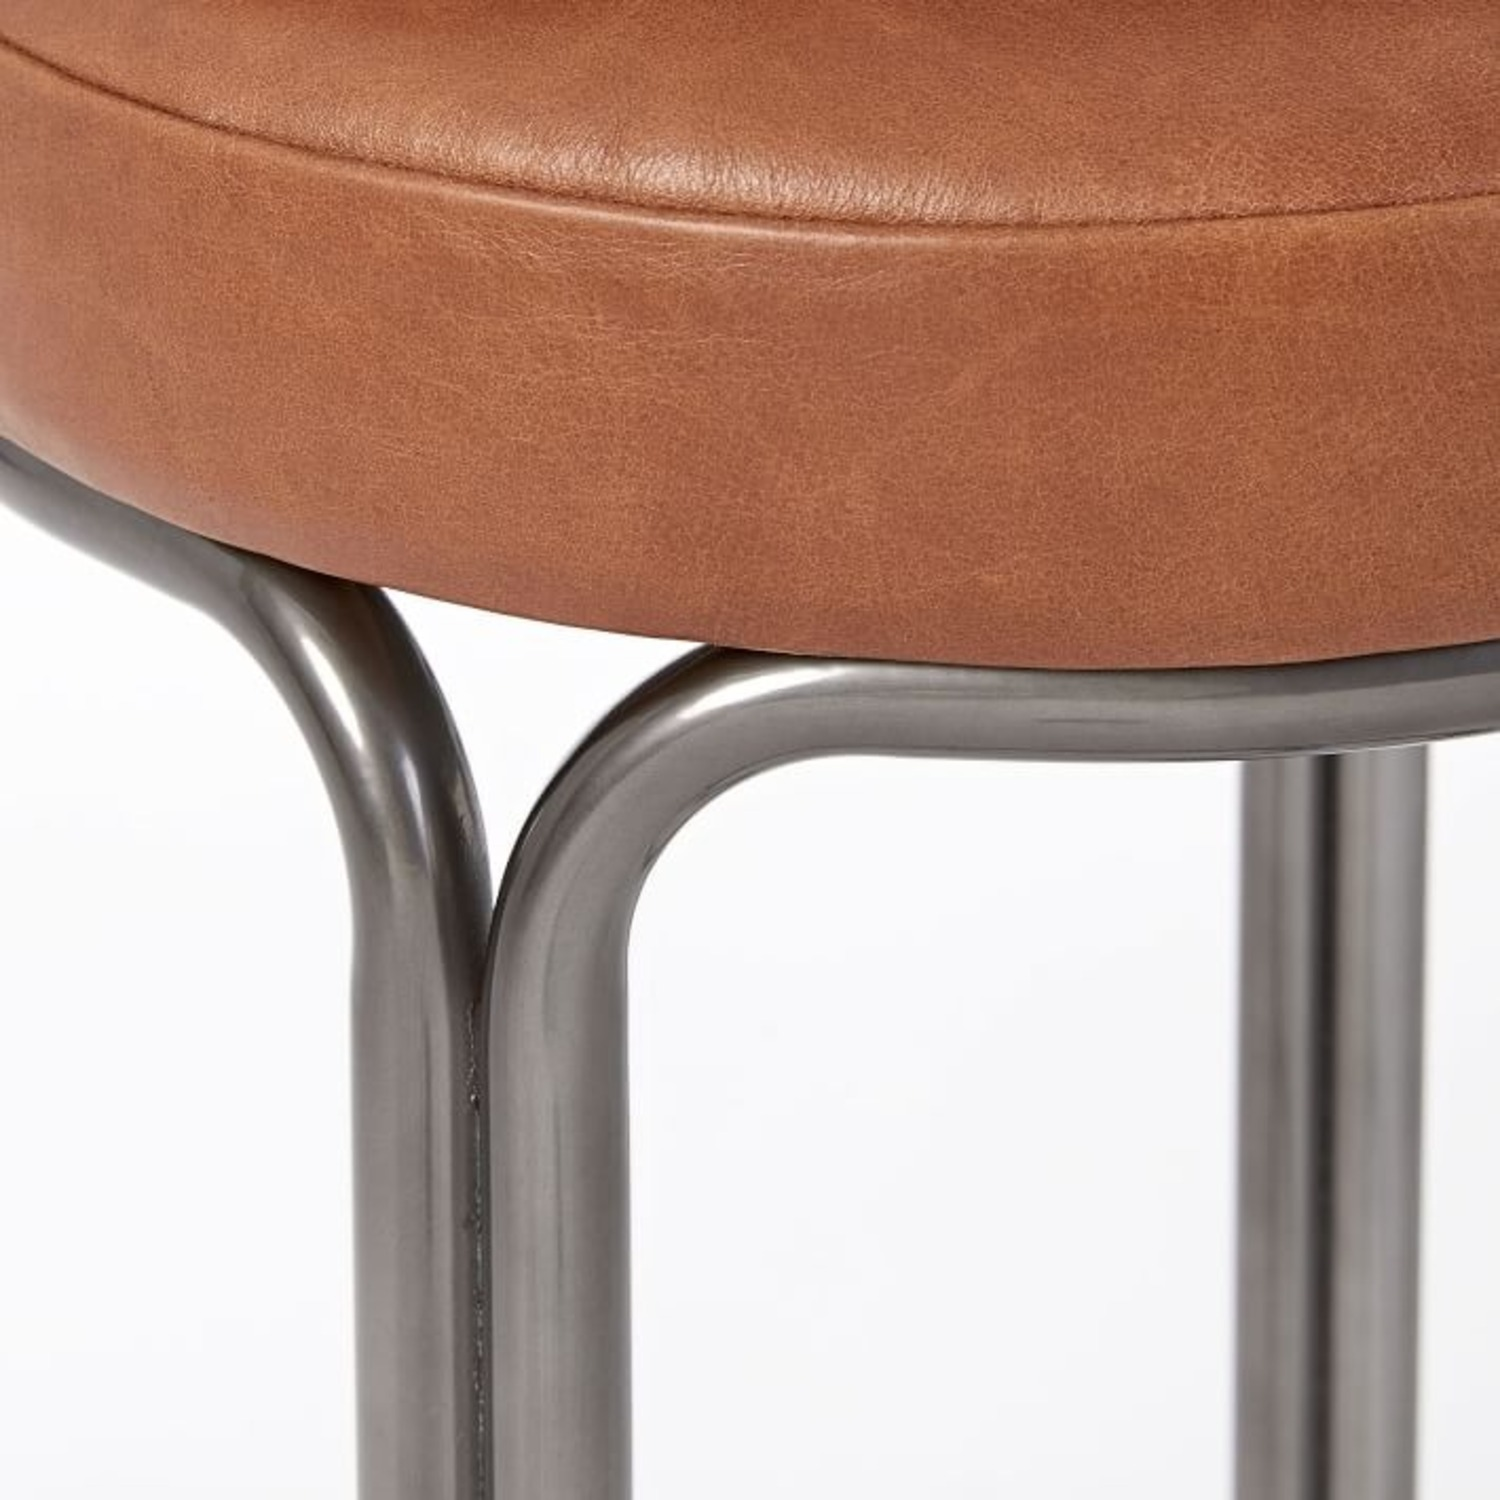 West Elm Cora Leather Counter Stool - image-2